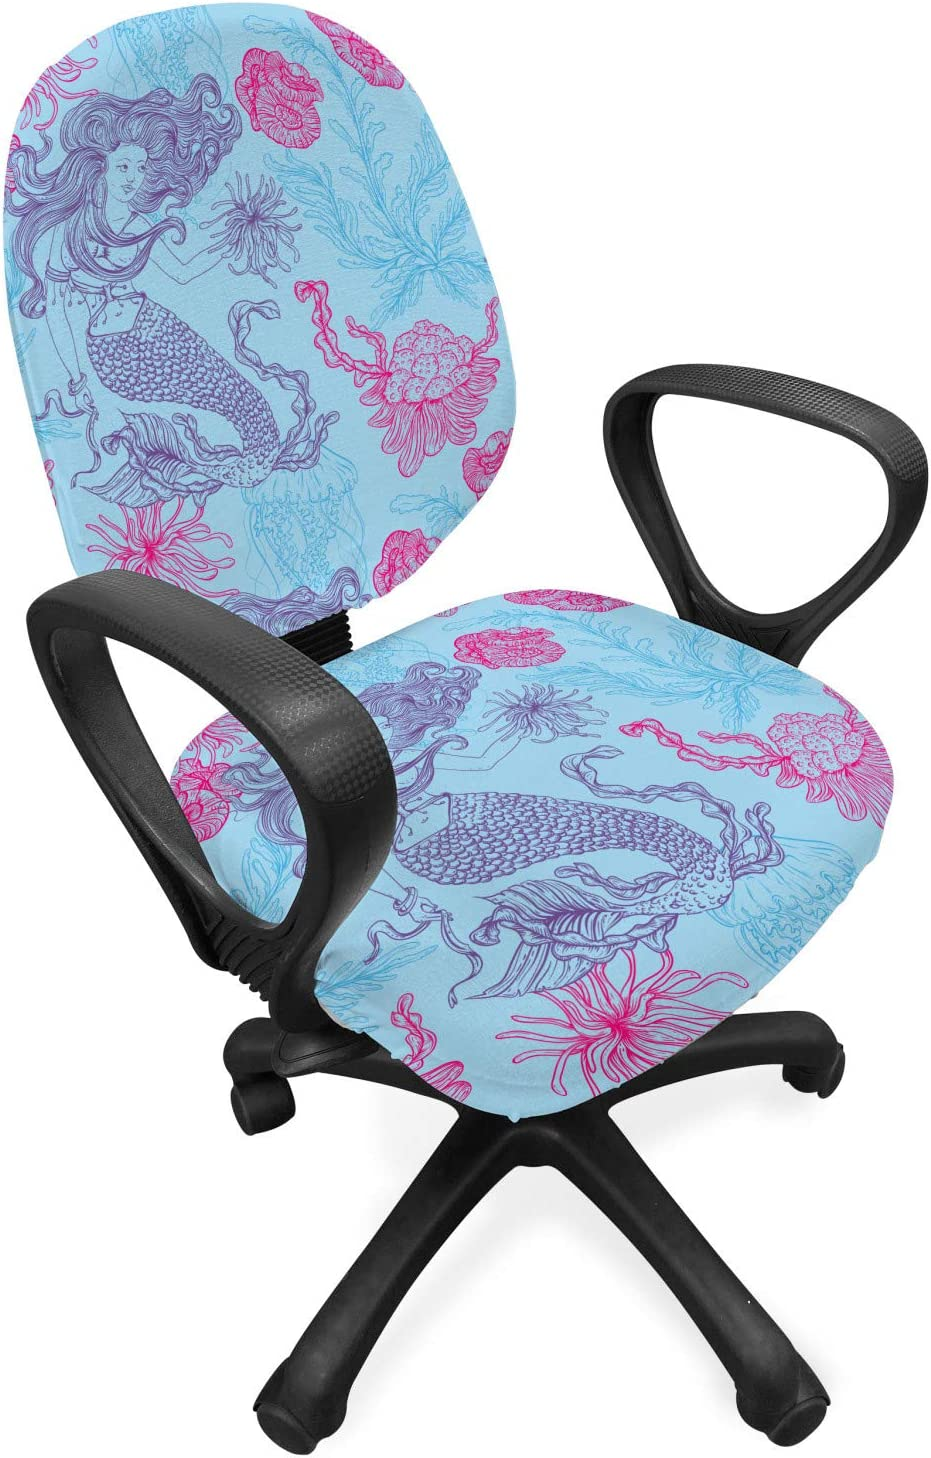 Lunarable Mermaid Office Chair Slipcover, Marine Plants Jellyfish and Seaweed Vintage Pattern Hand Drawn Flora, Protective Stretch Decorative Fabric Cover, Standard Size, Blue Magenta